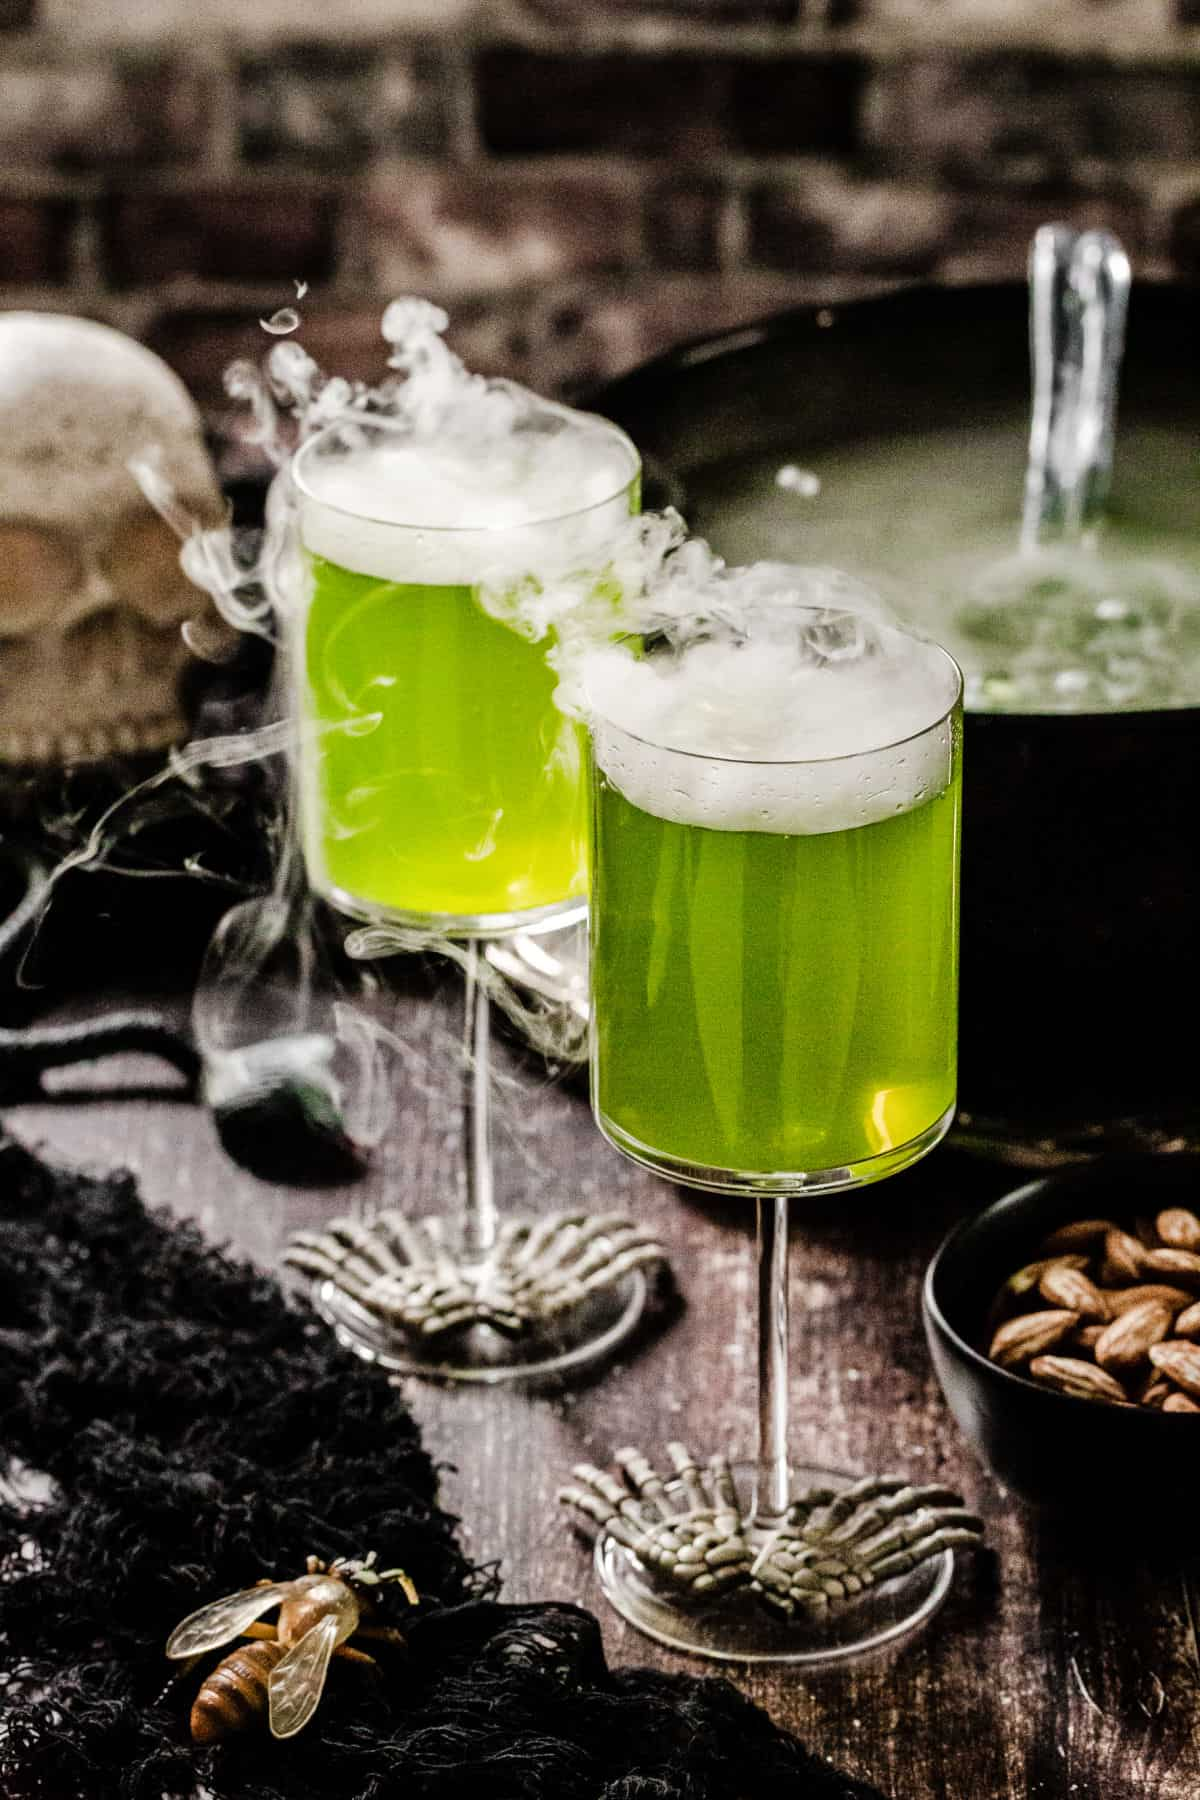 two wine glasses with green drink and dry ice fog